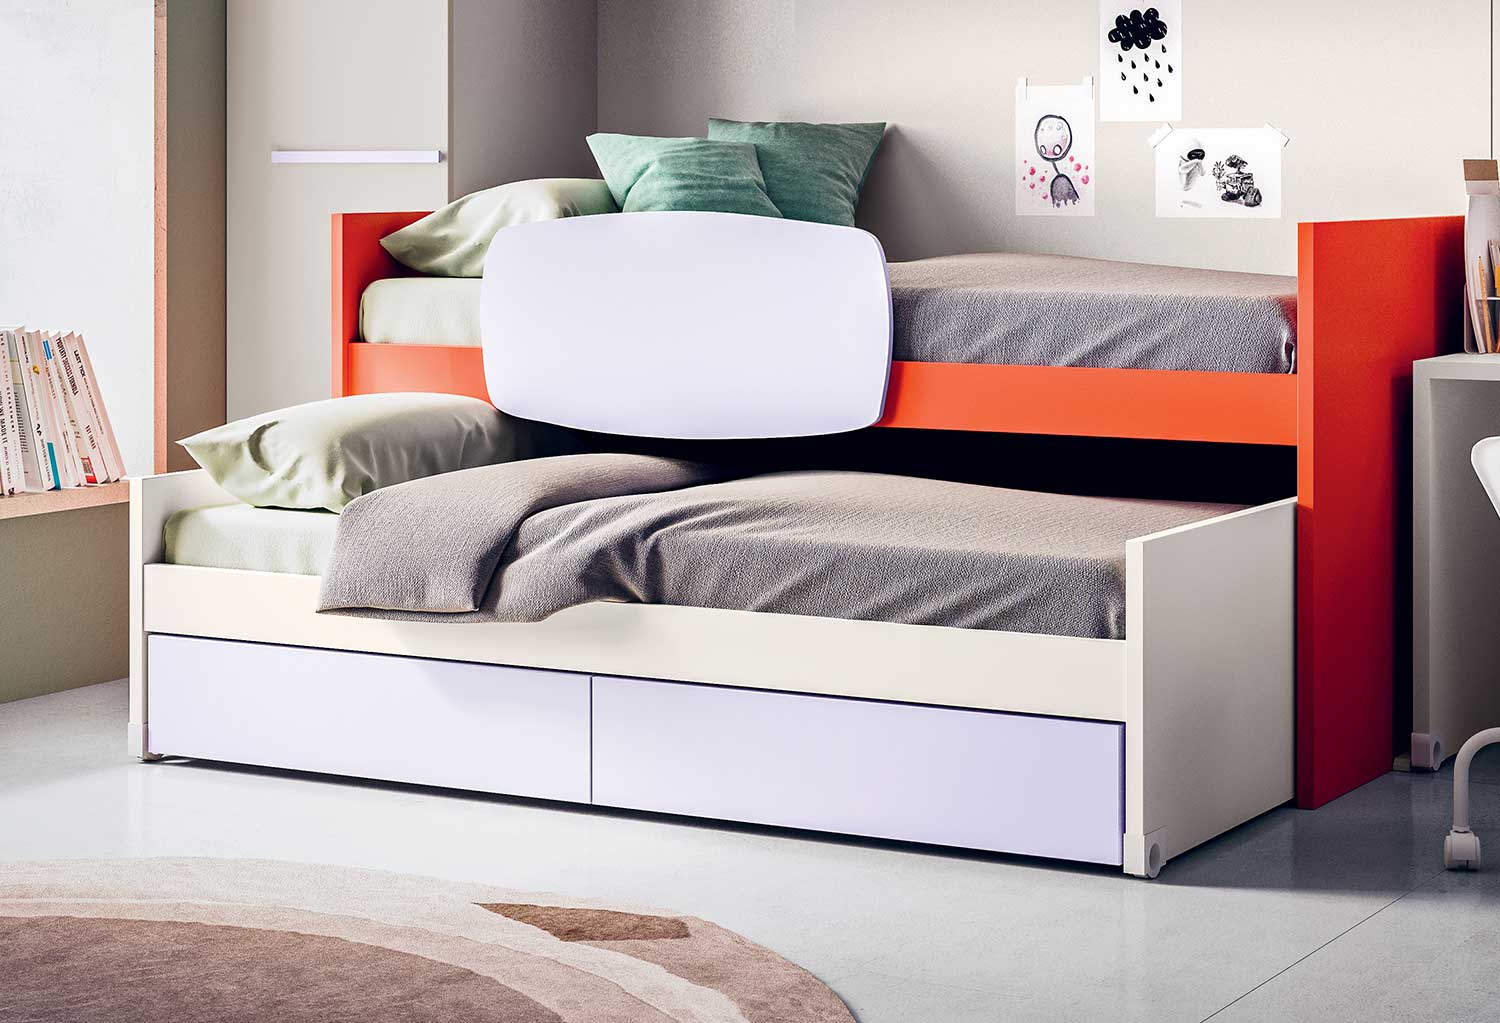 Lobby Estraibile Pull Out Bed With Big Drawers Or Pull Out